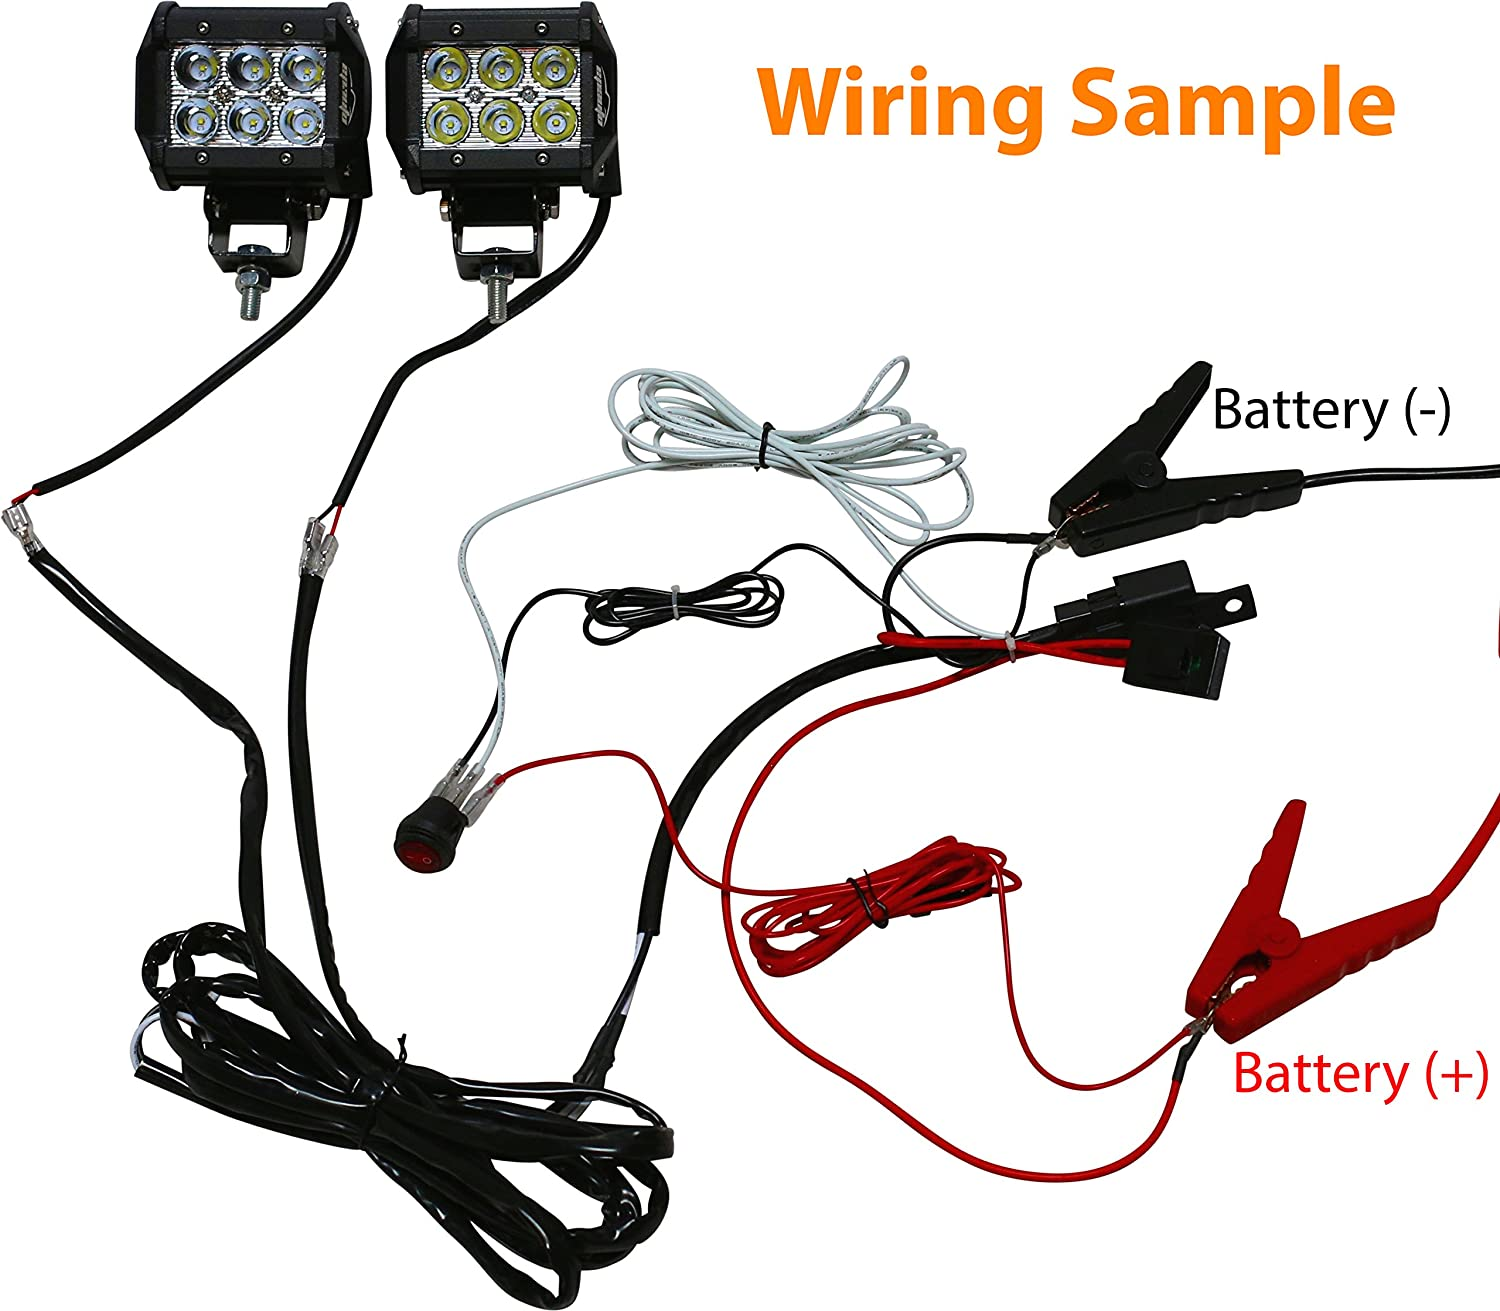 Epauto Led Light Bar Wiring Harness Kit 12v 40a Relay Im Looking For A Sample Electrical Wire And Switch Diagram Fuse On Off Automotive